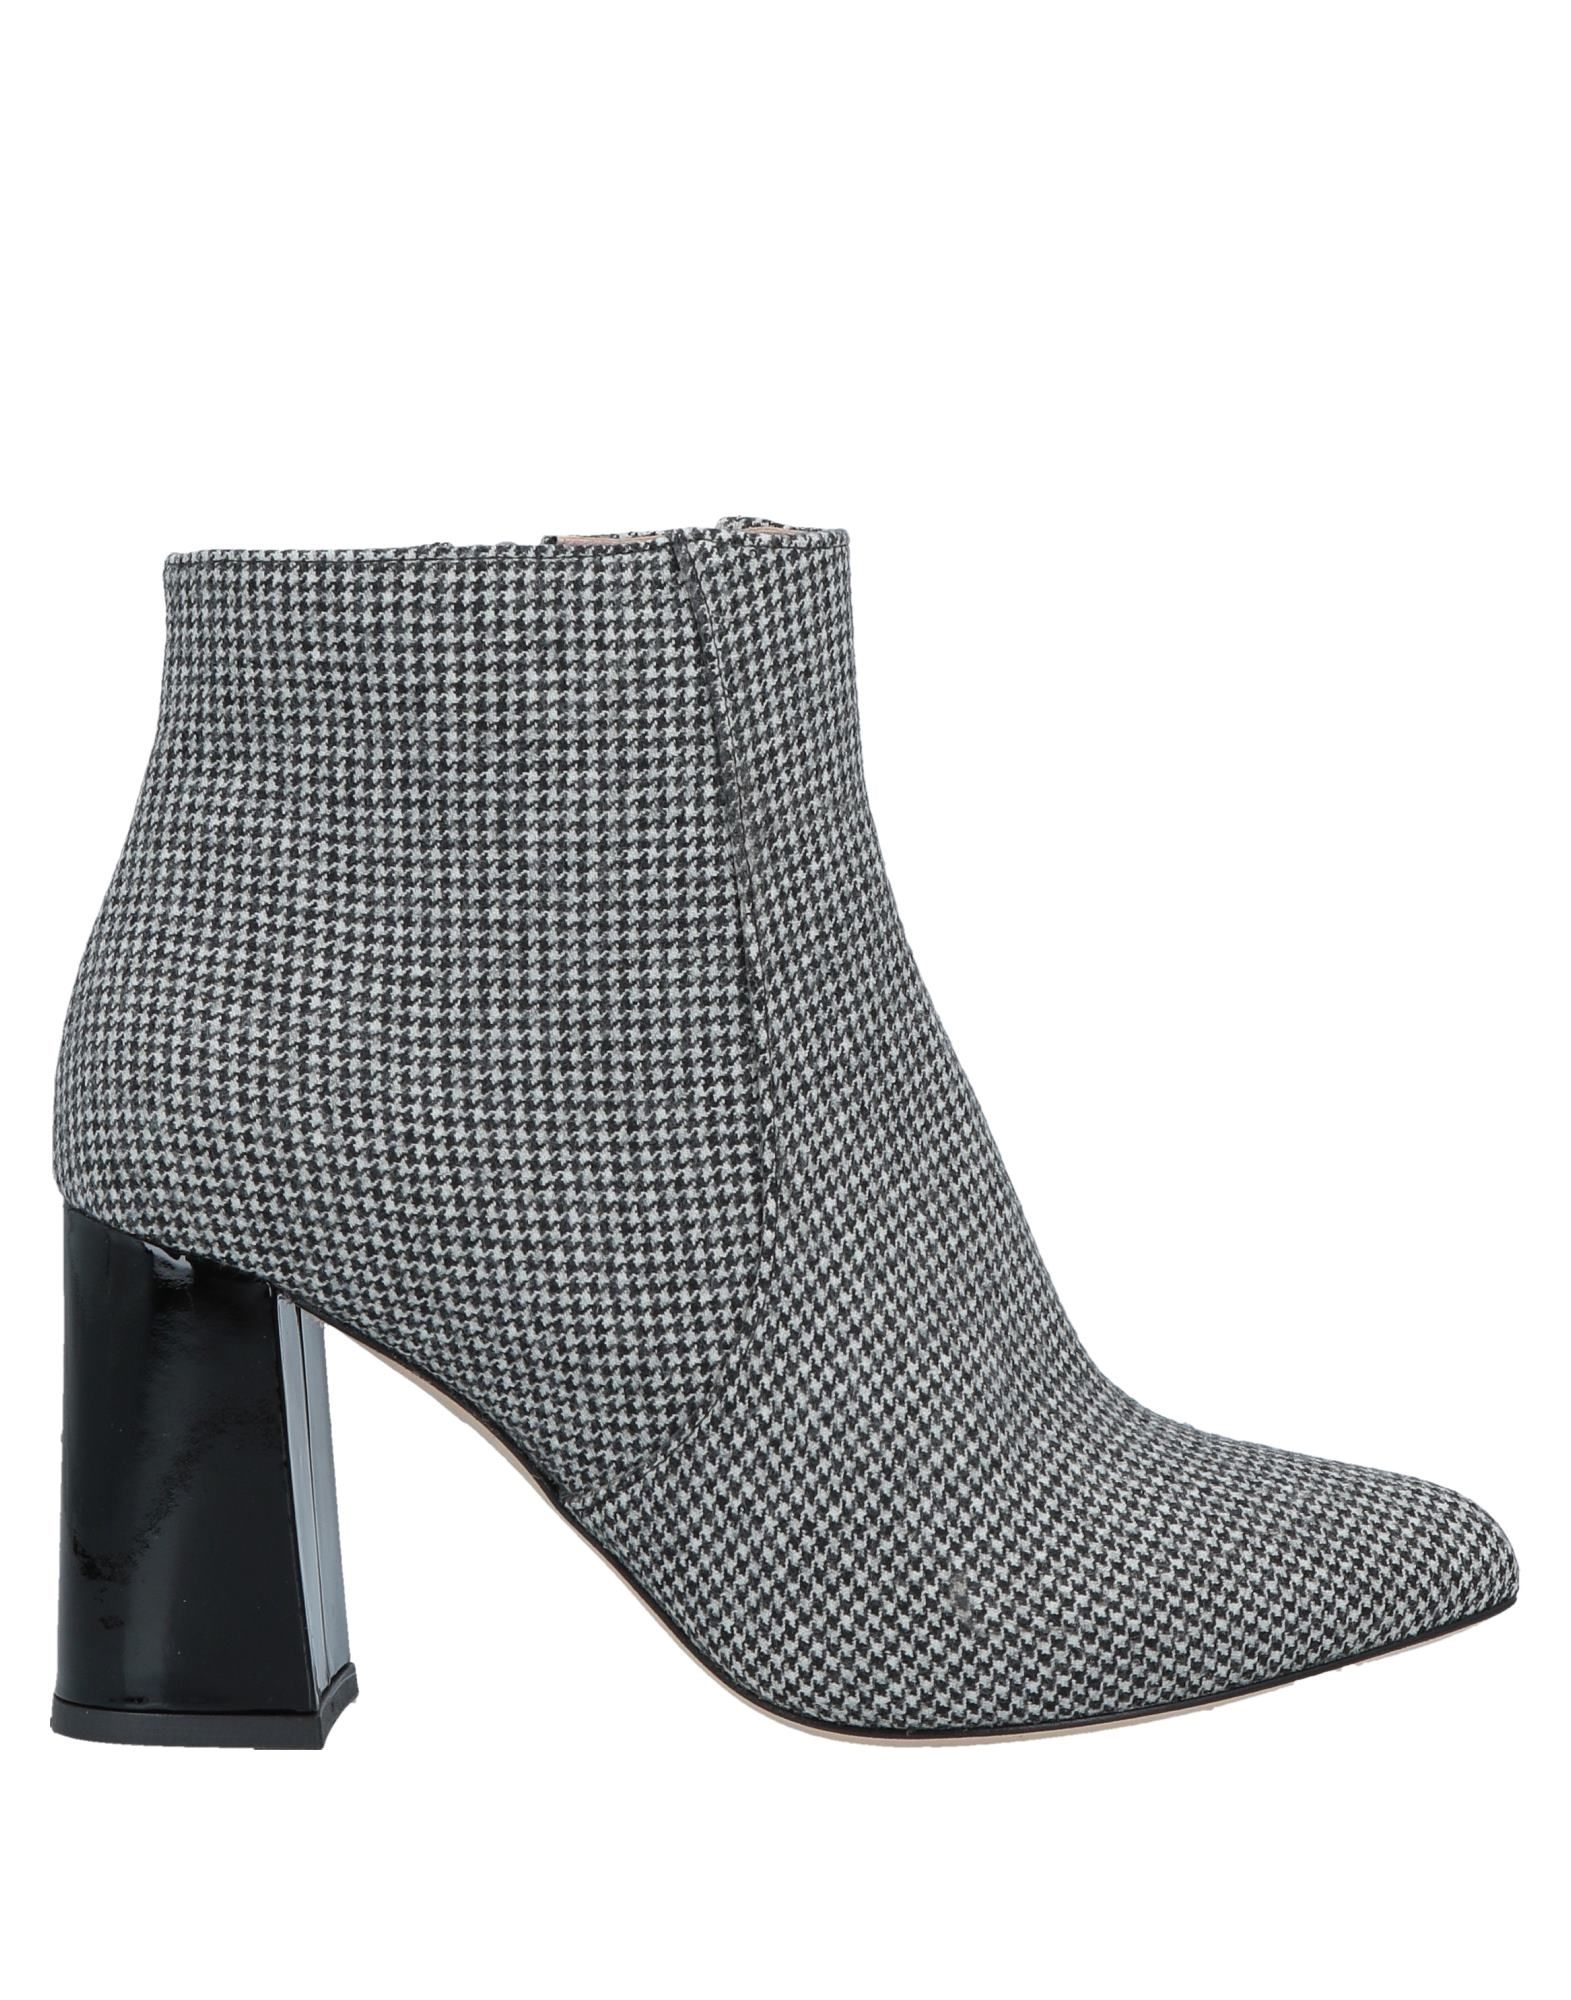 BAMS Ankle Boots in Gray